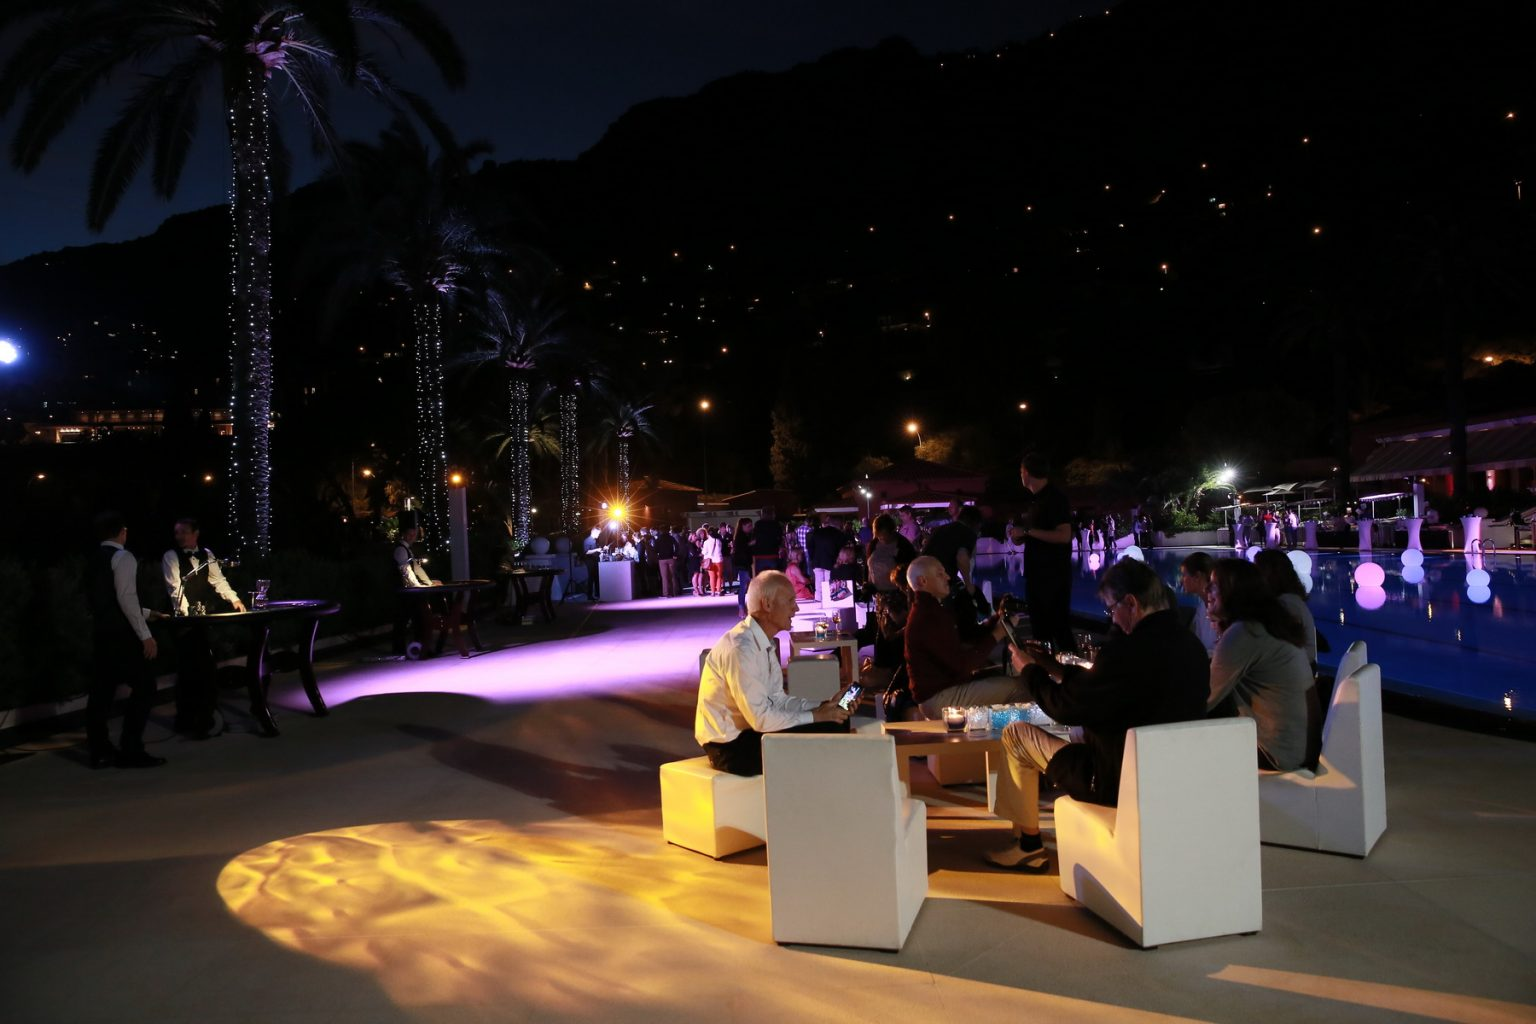 Le Deck Monte Carlo Pool Evening 24 - Le Deck Monte Carlo Pool Evening